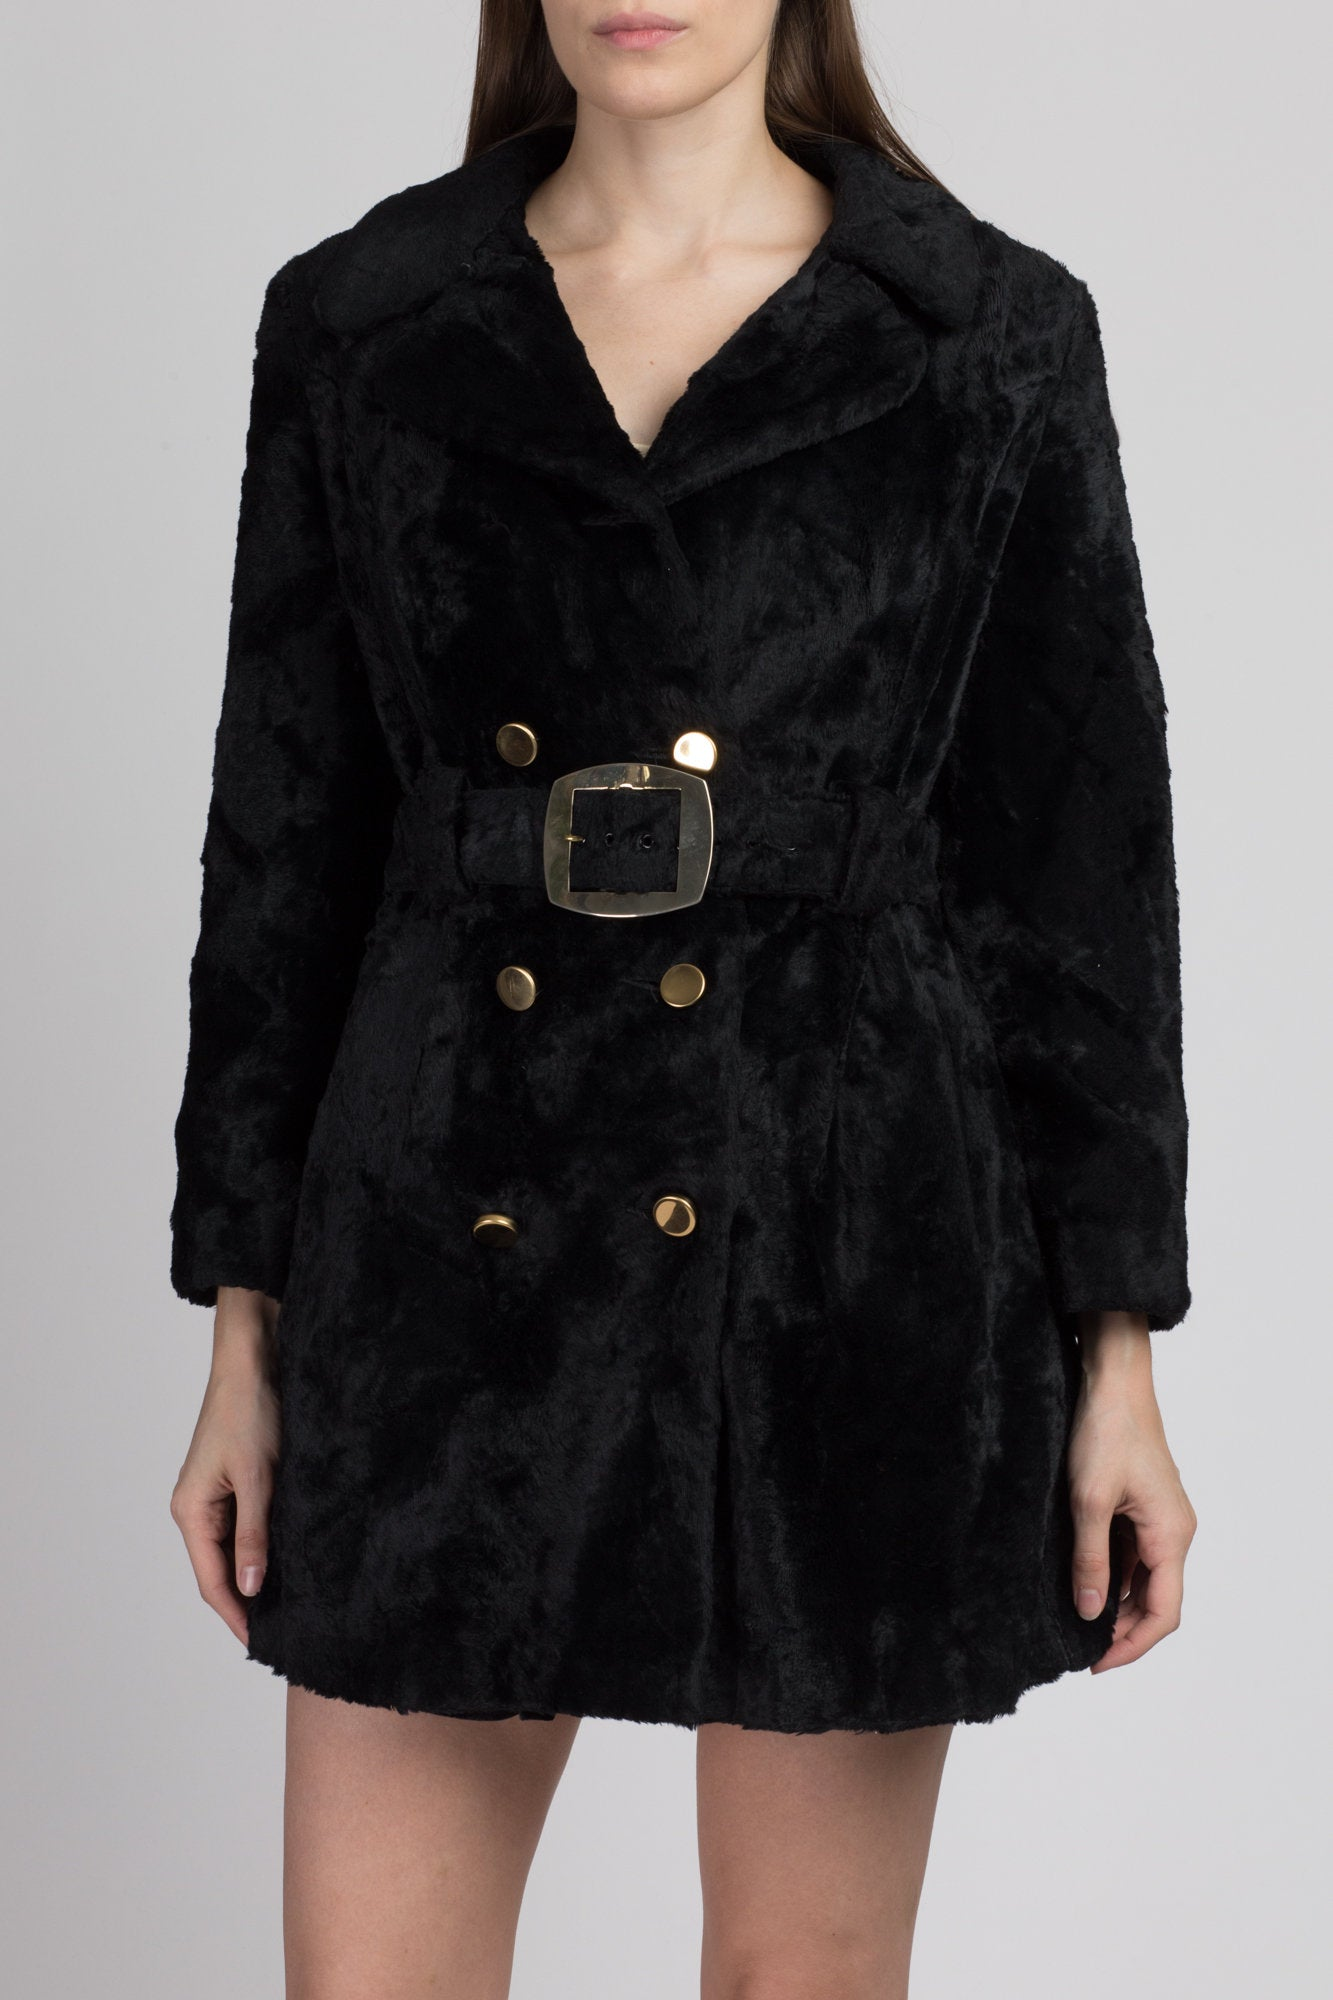 70s Belted Black Faux Fur Coat, As Is - Medium